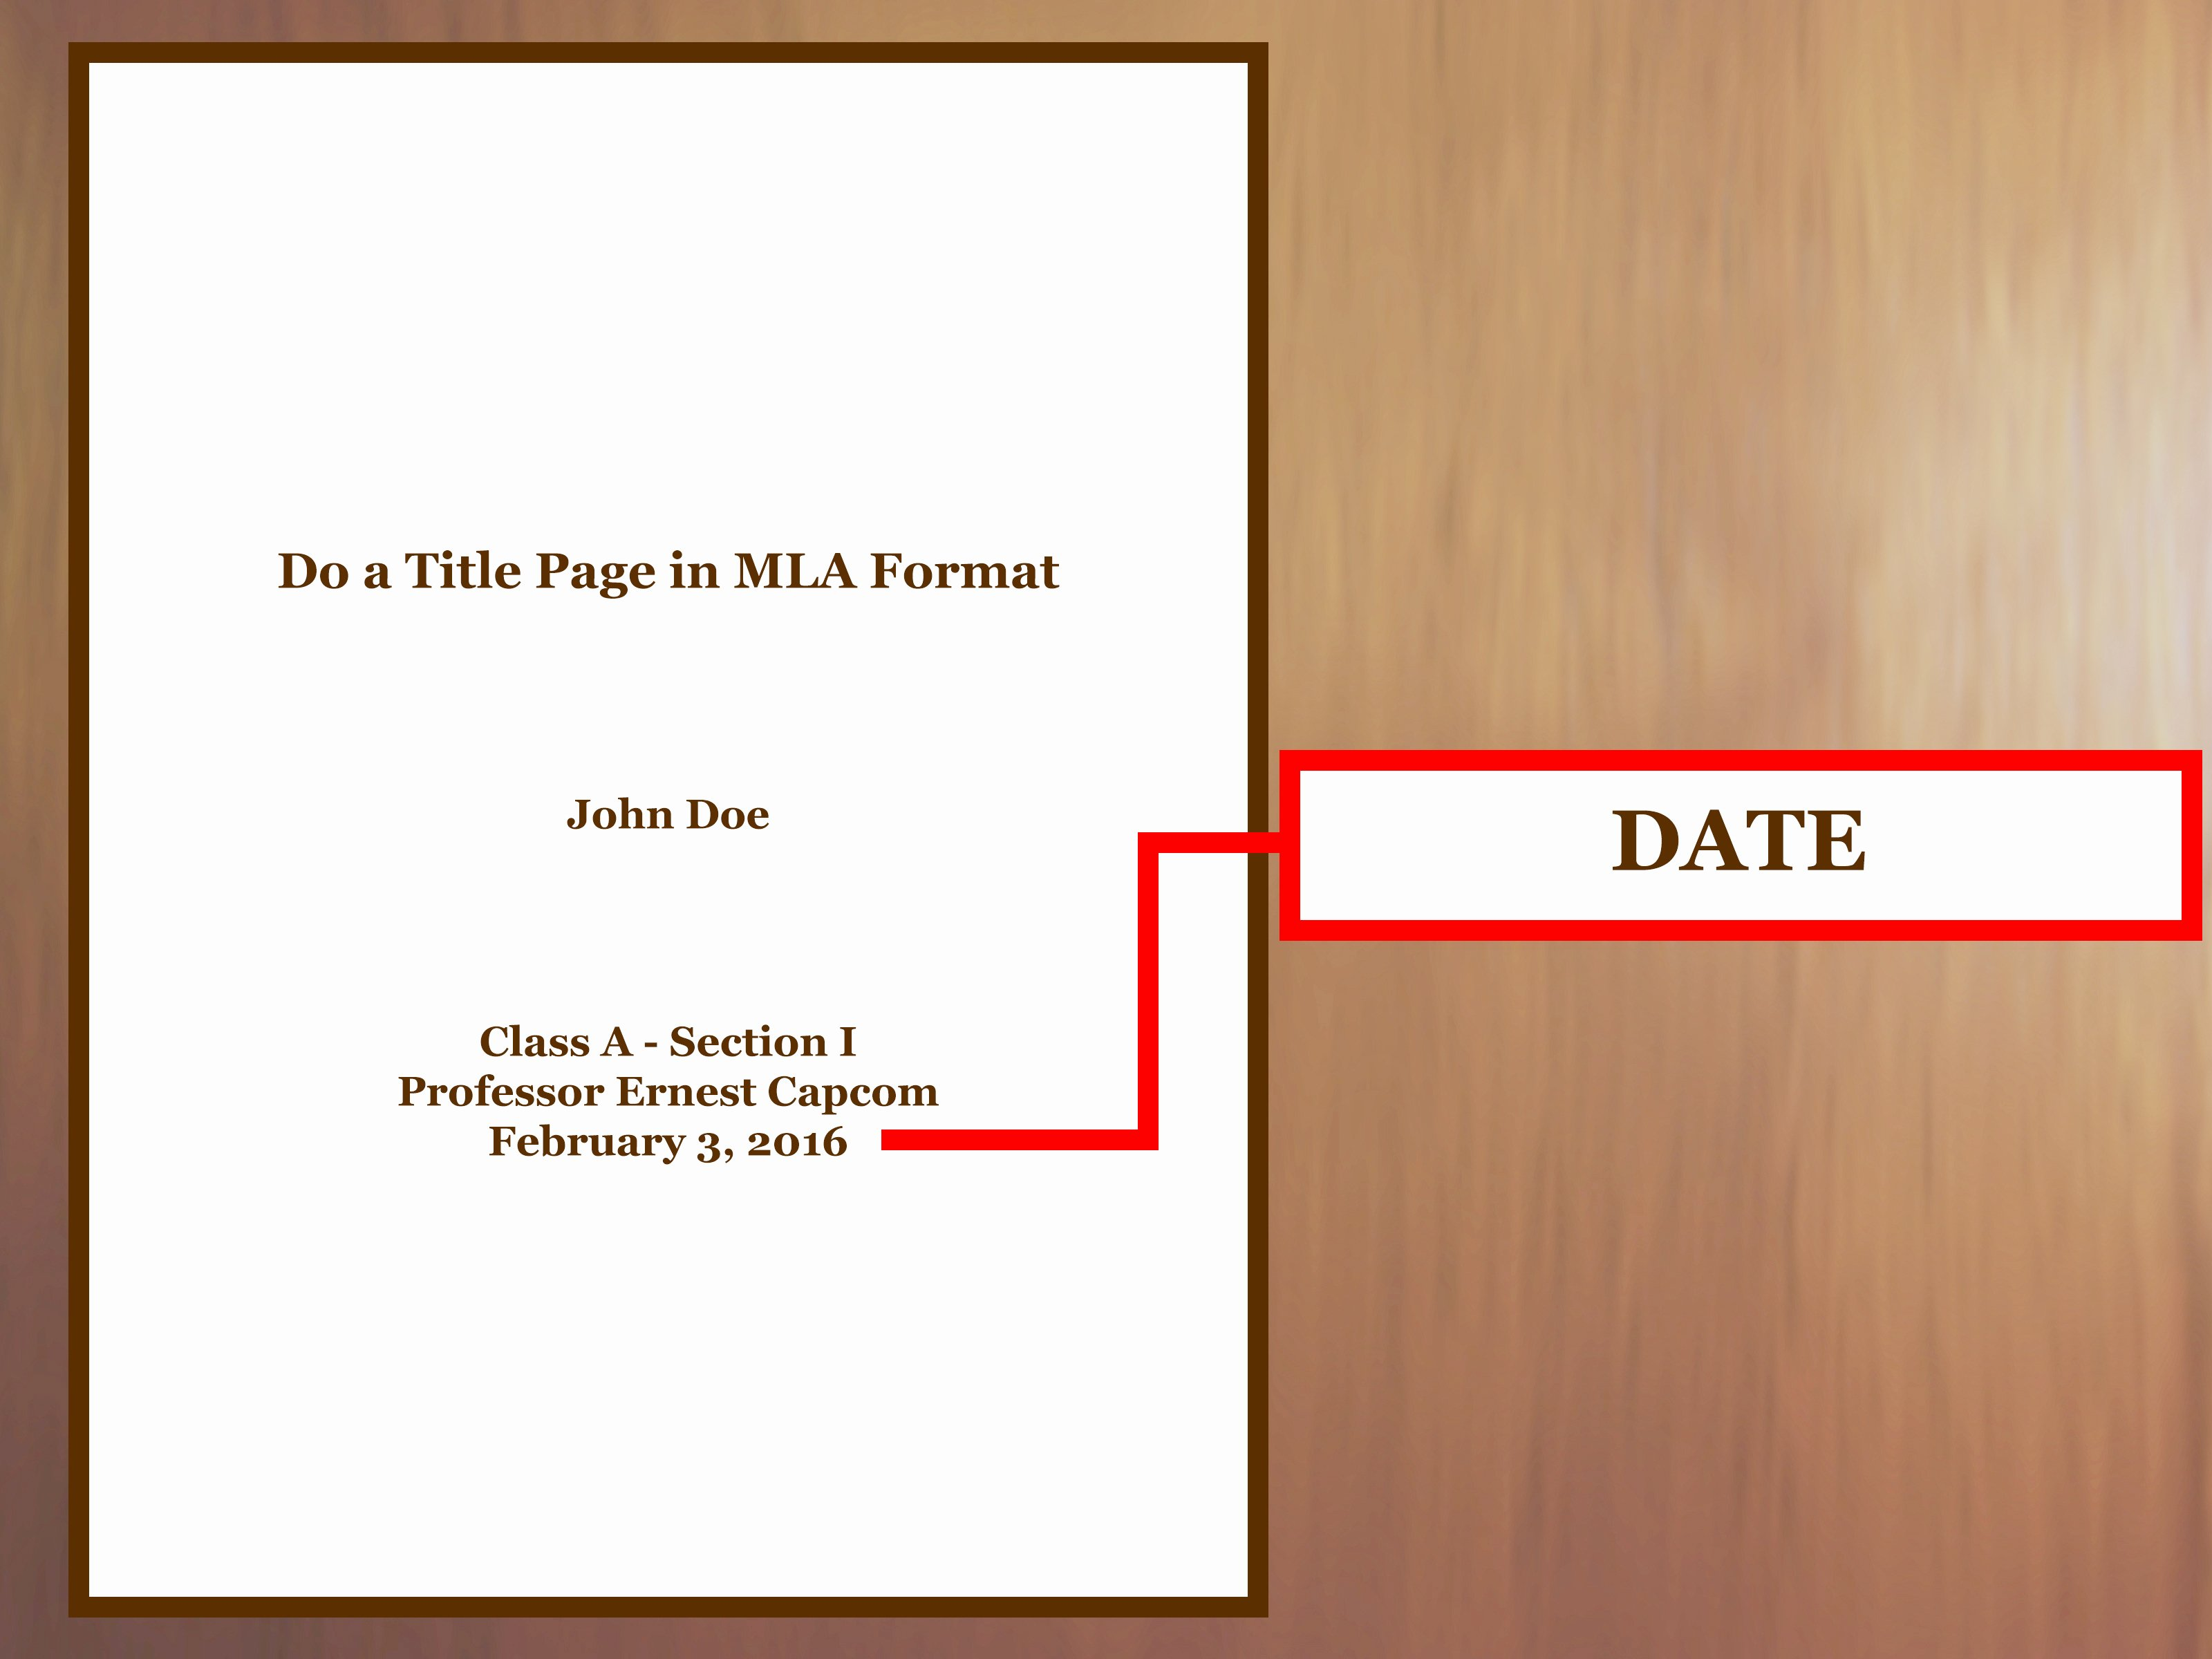 Mla Cover Page Template New How to Do A Title Page In Mla format with Examples Wikihow